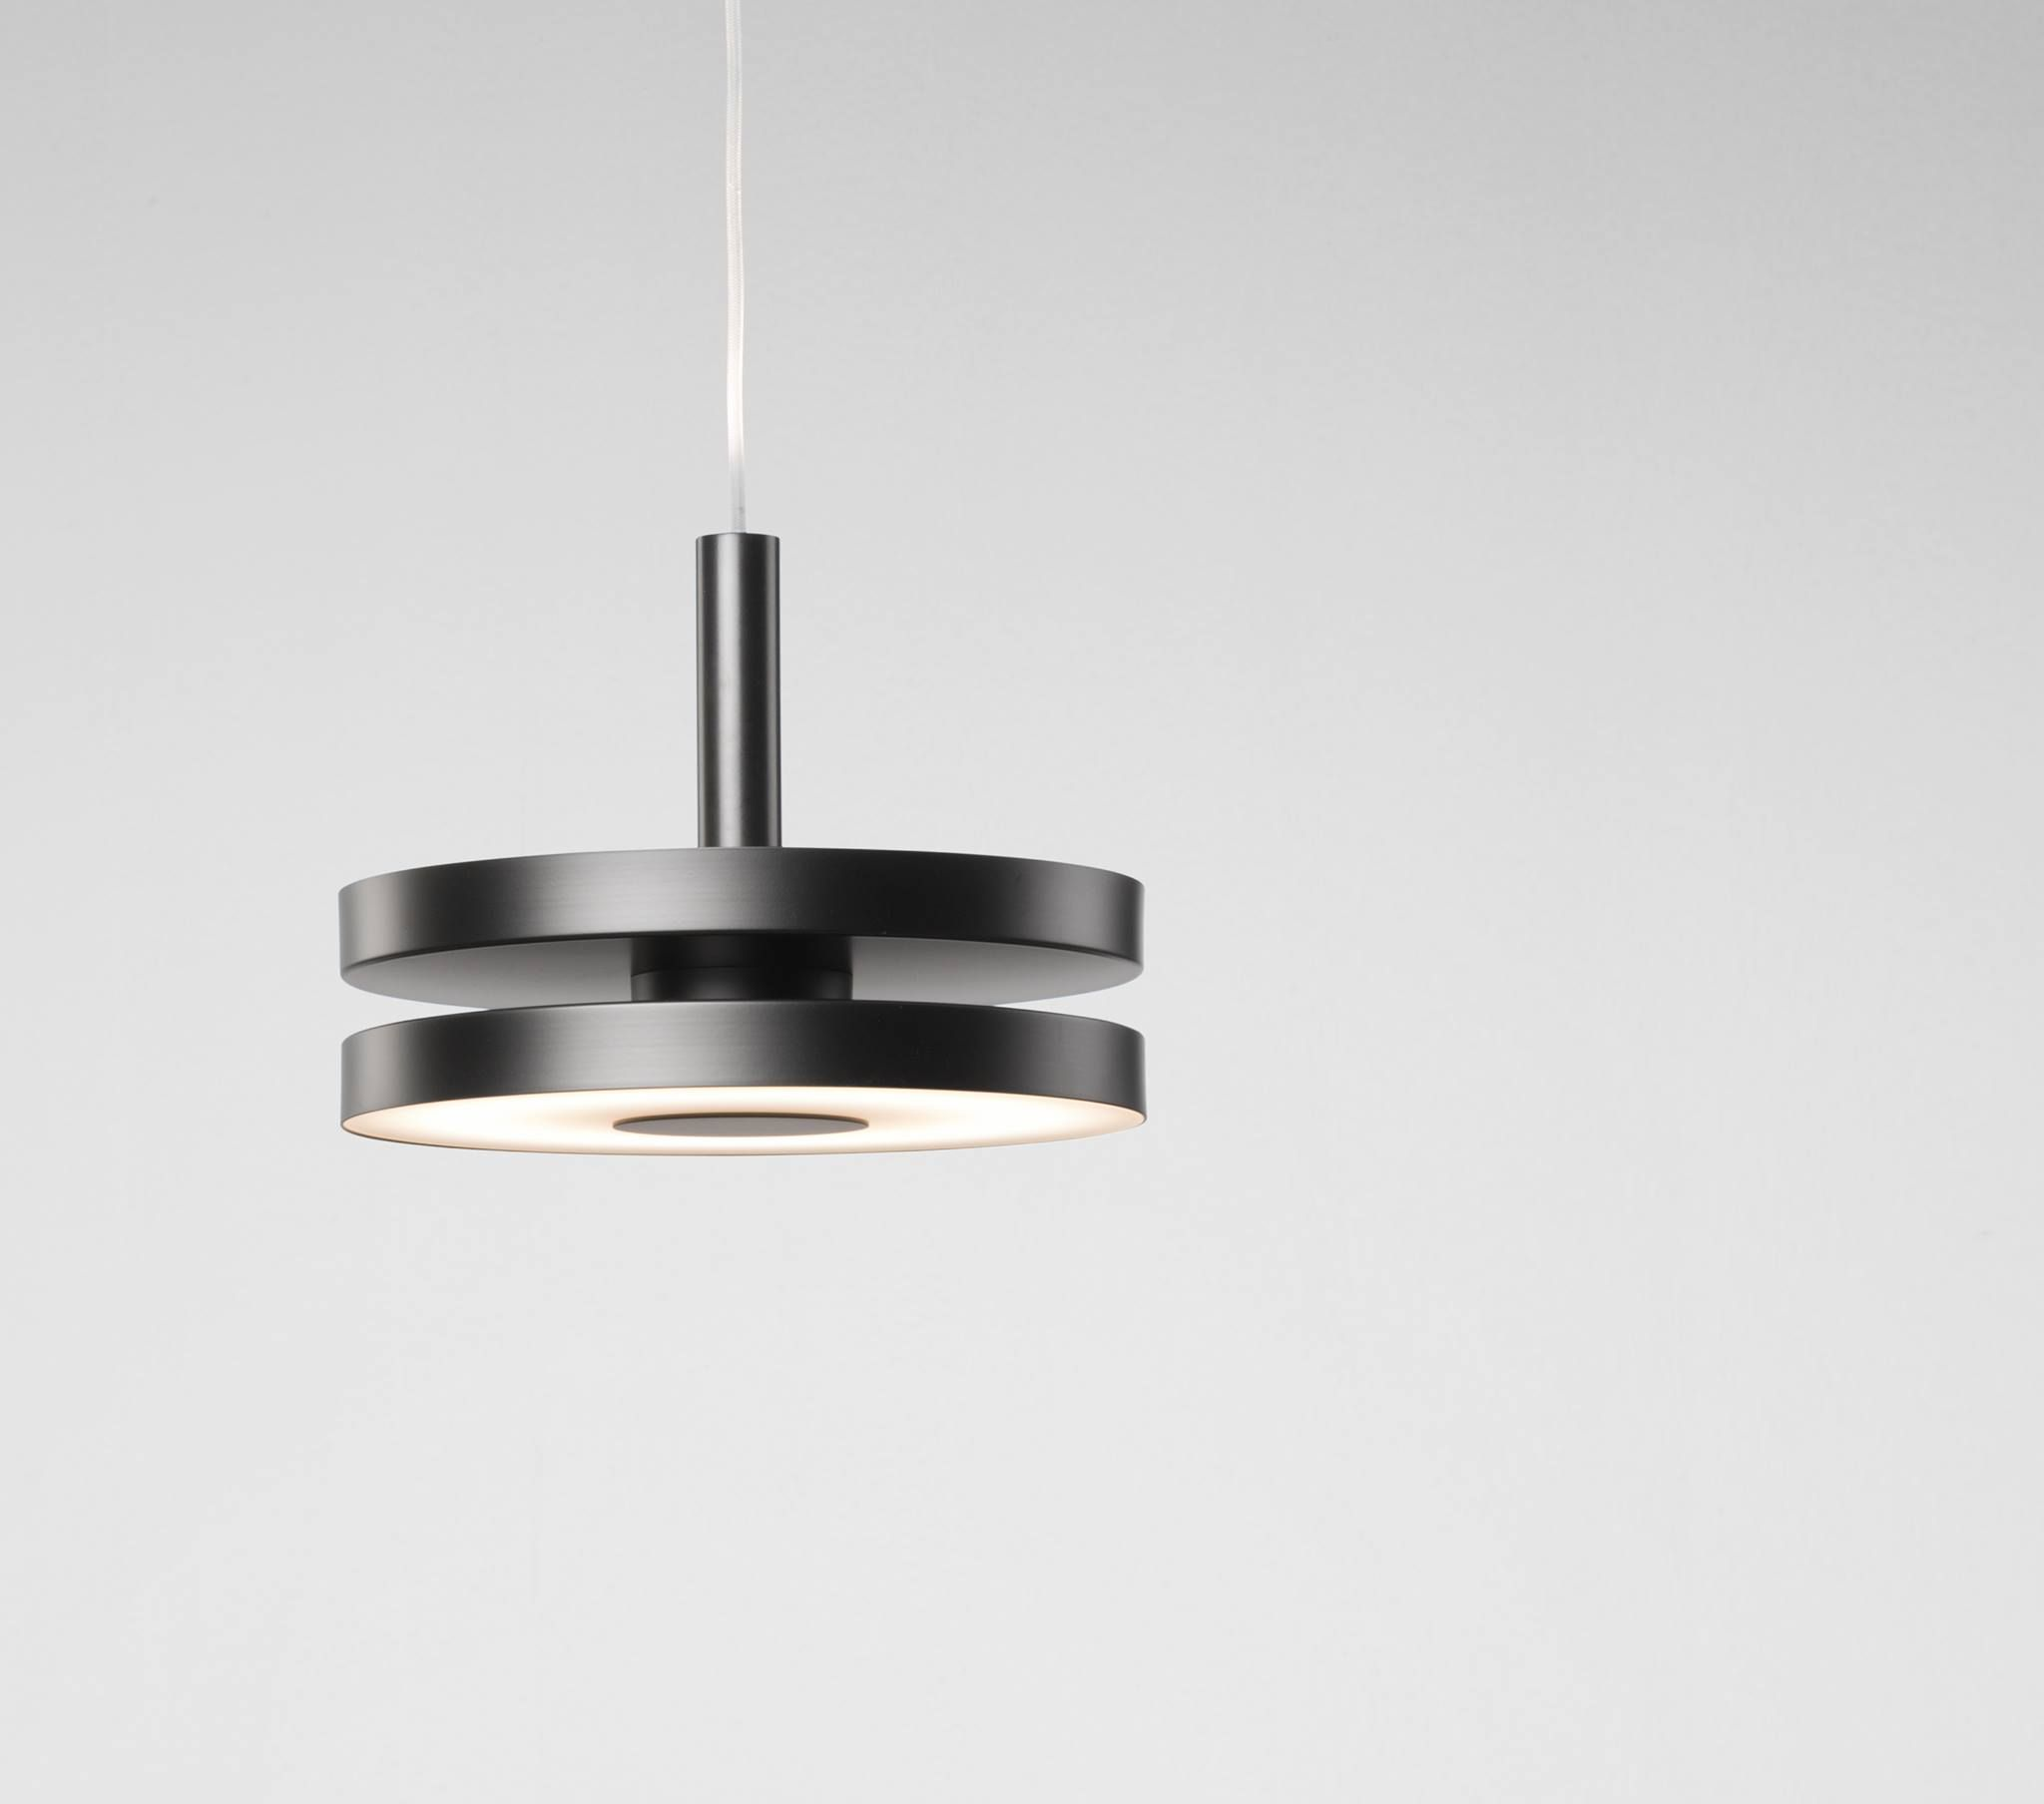 The Strict Design And The Latest Led Technology Merge Together To